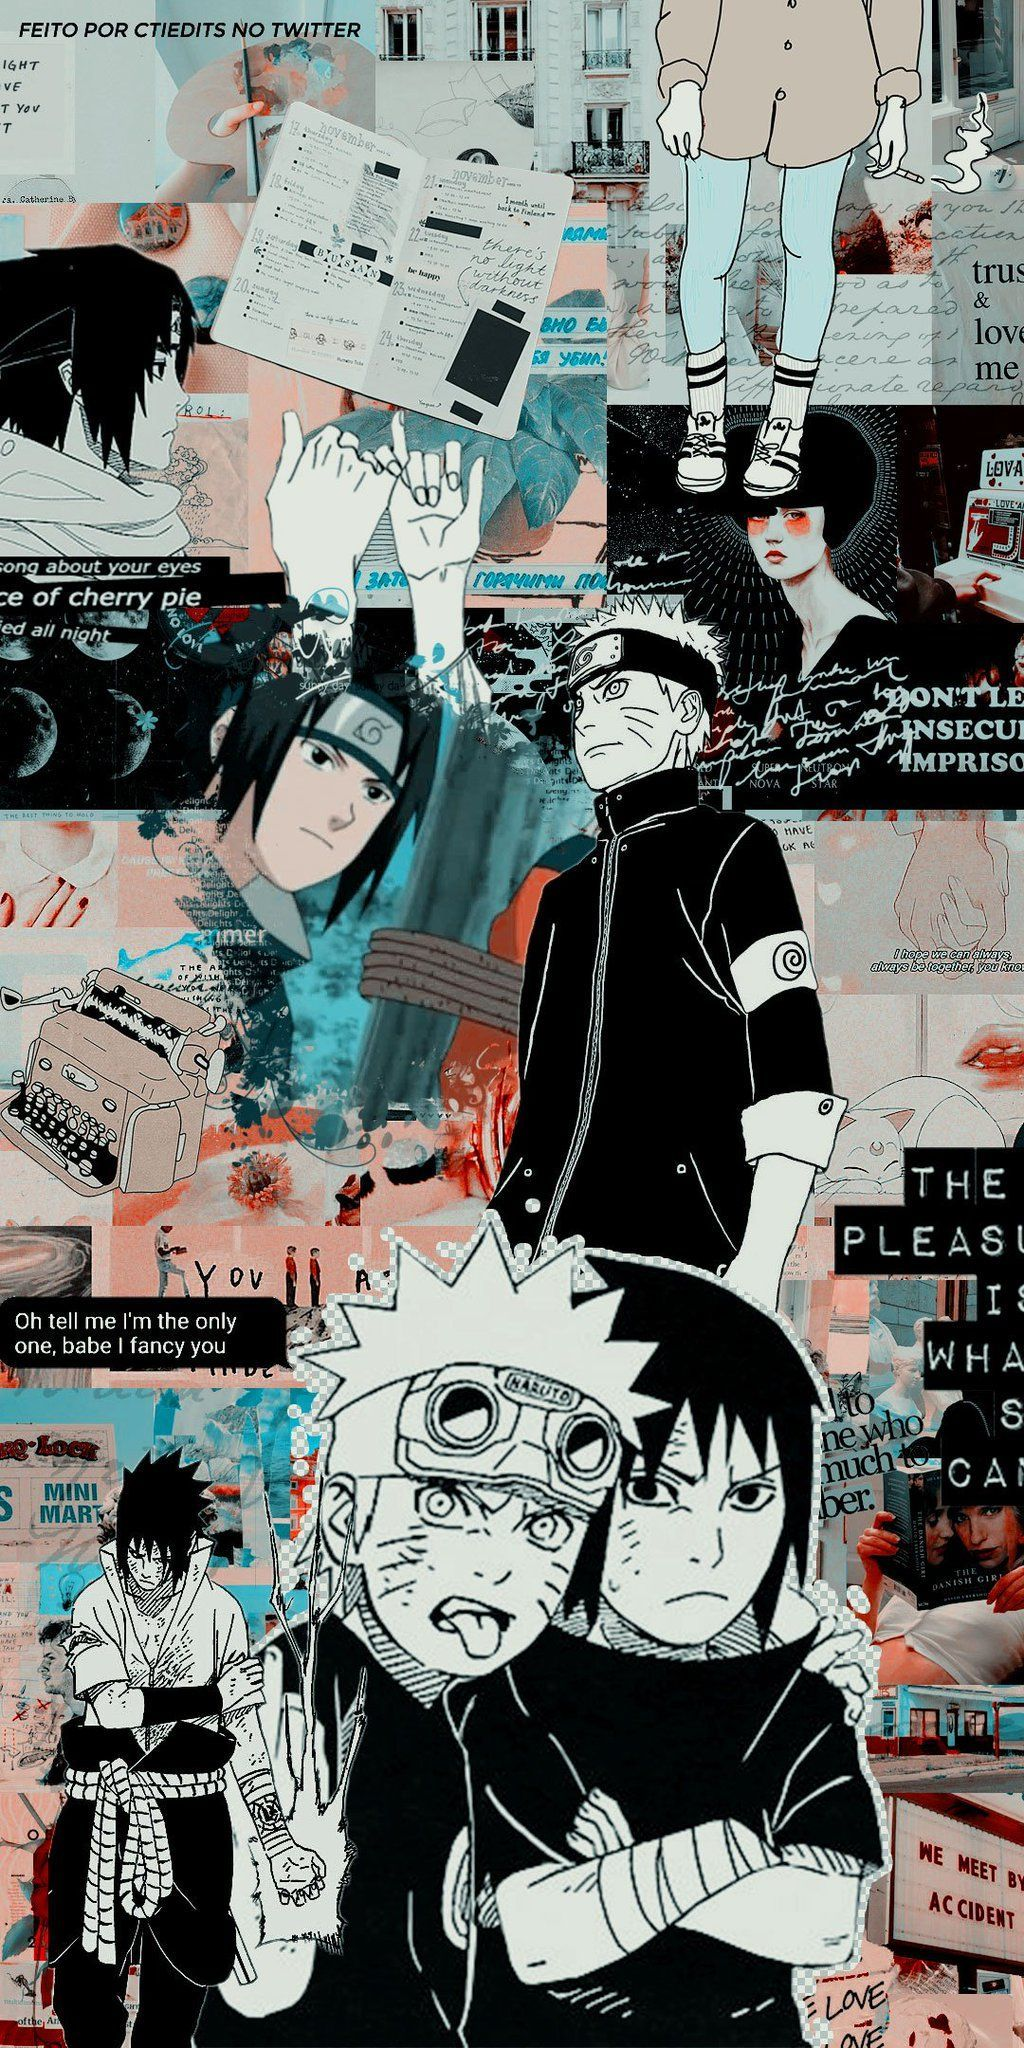 Power Edits On Naruto And Sasuke Wallpaper Anime Wallpaper Cute Anime Wallpaper